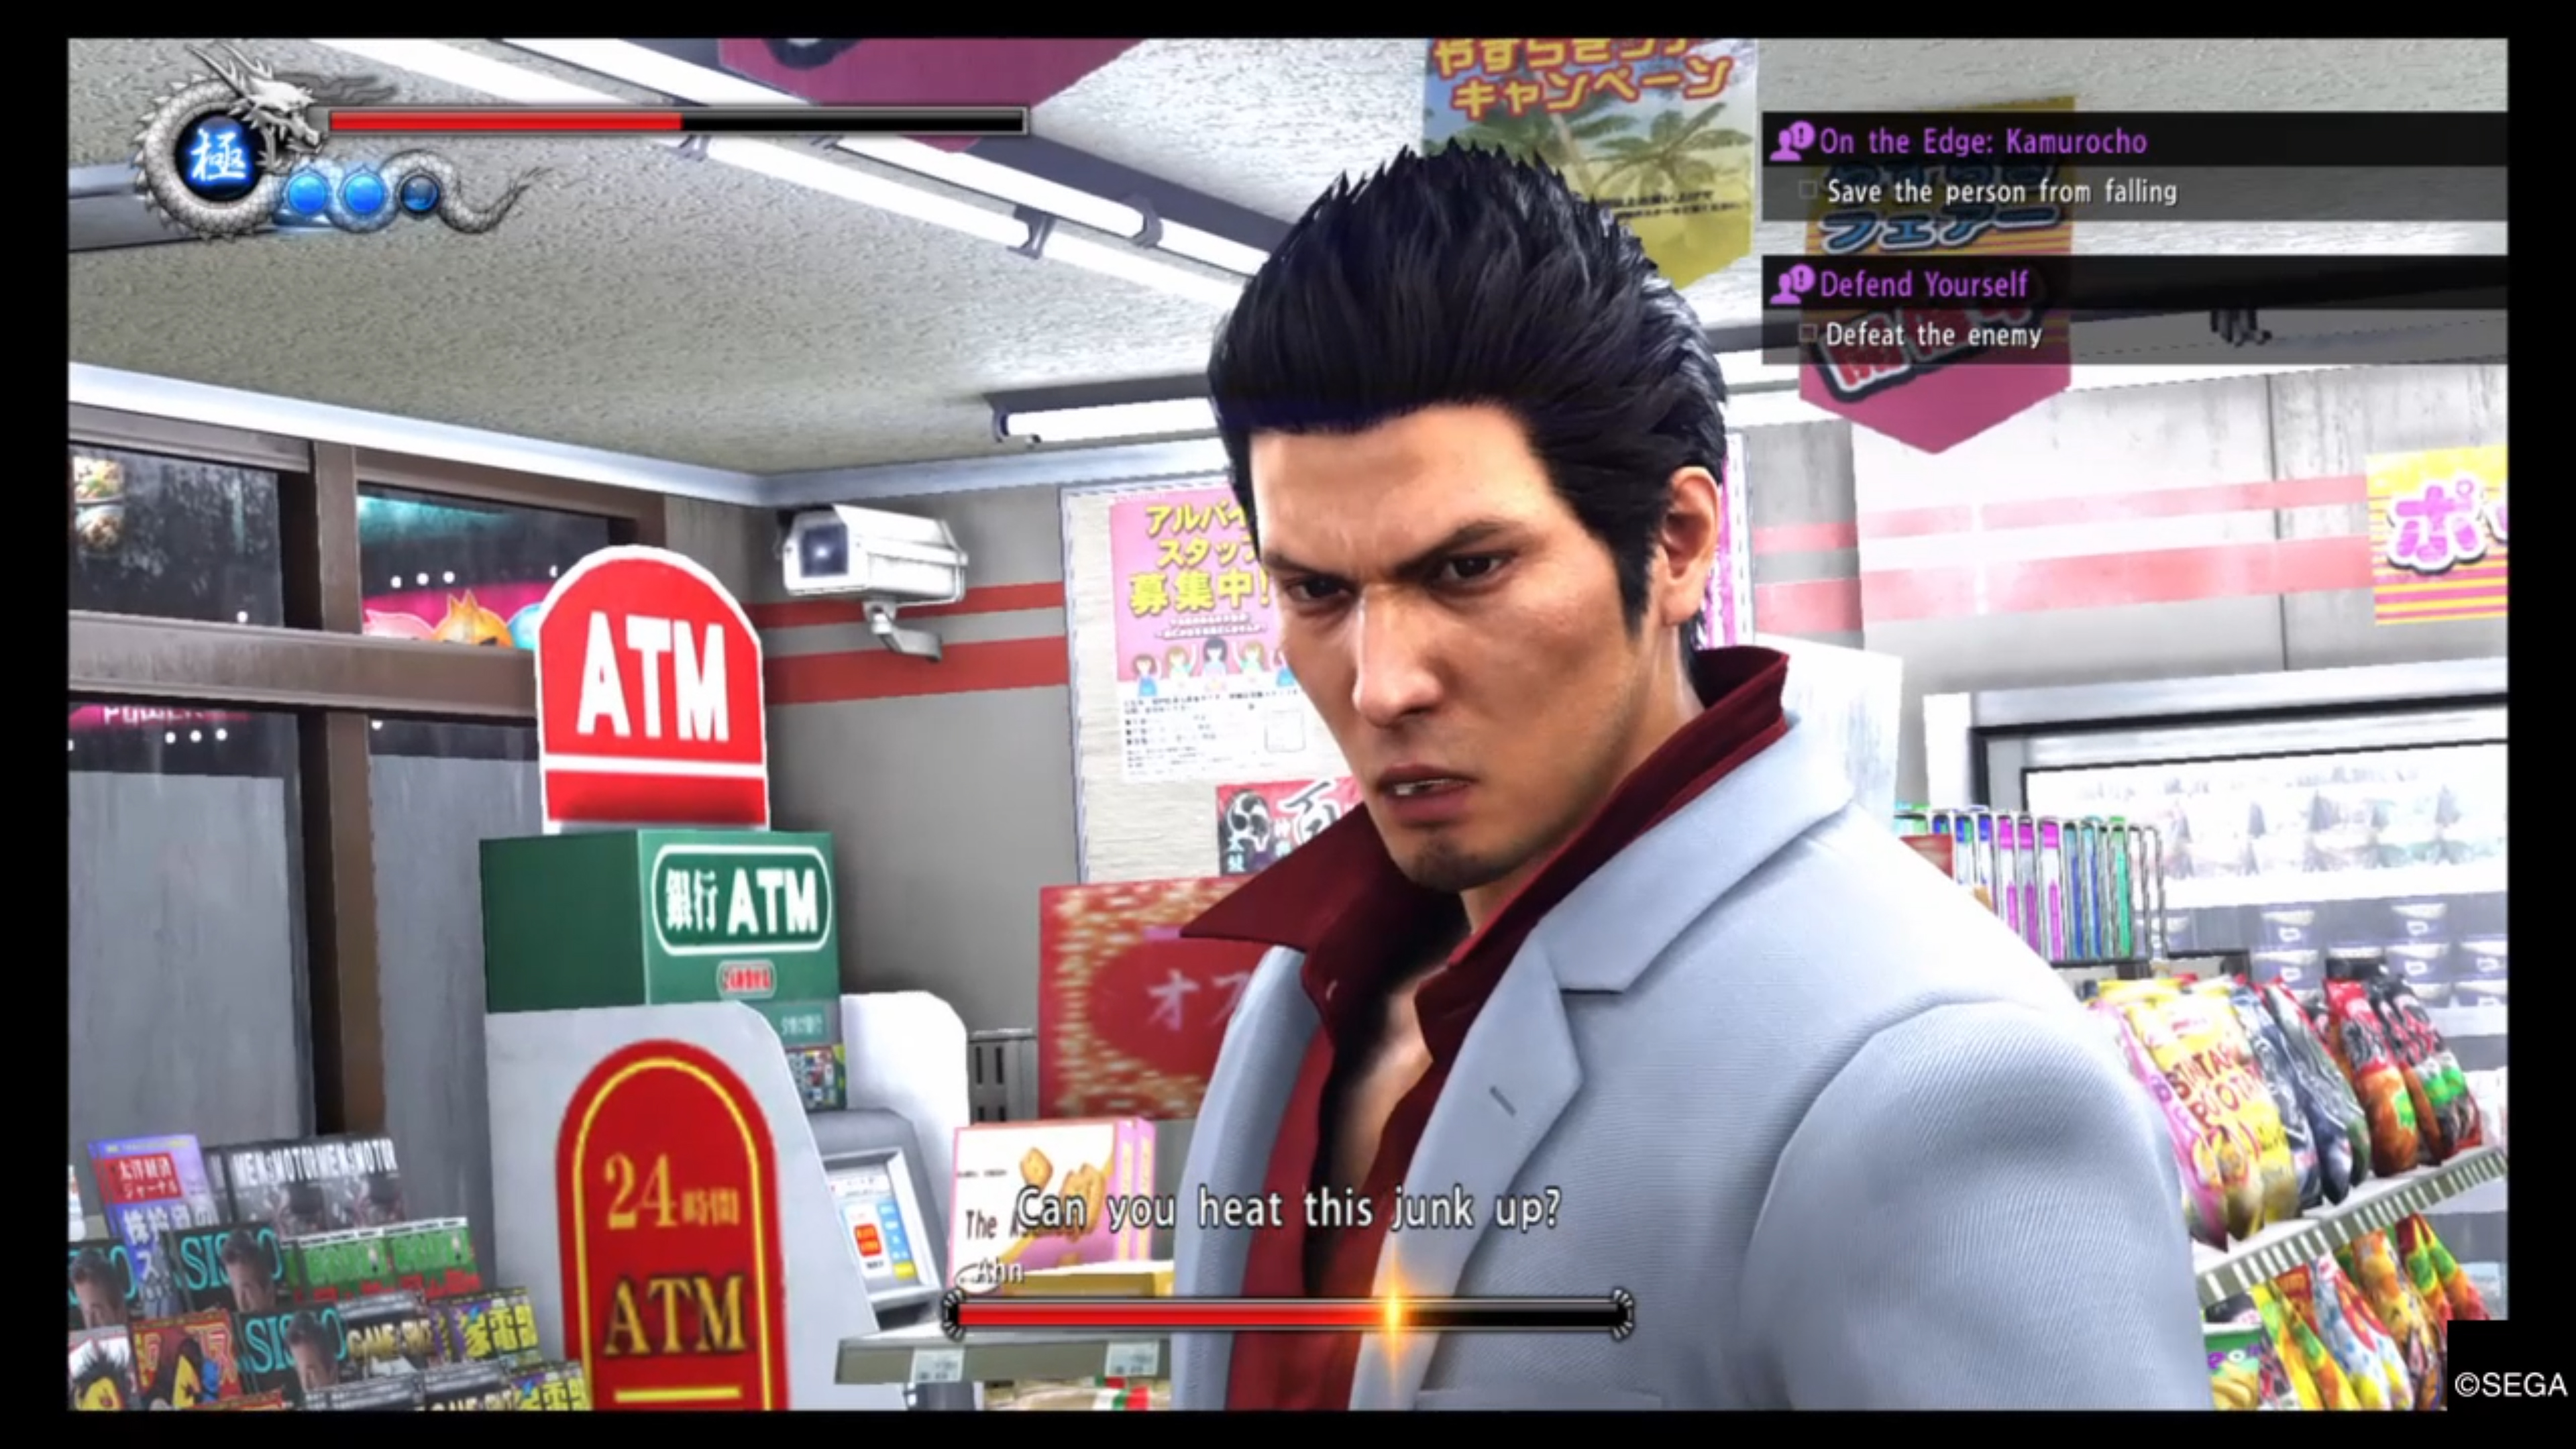 Yakuza 6: The Song of Life - Convenience Store Fight